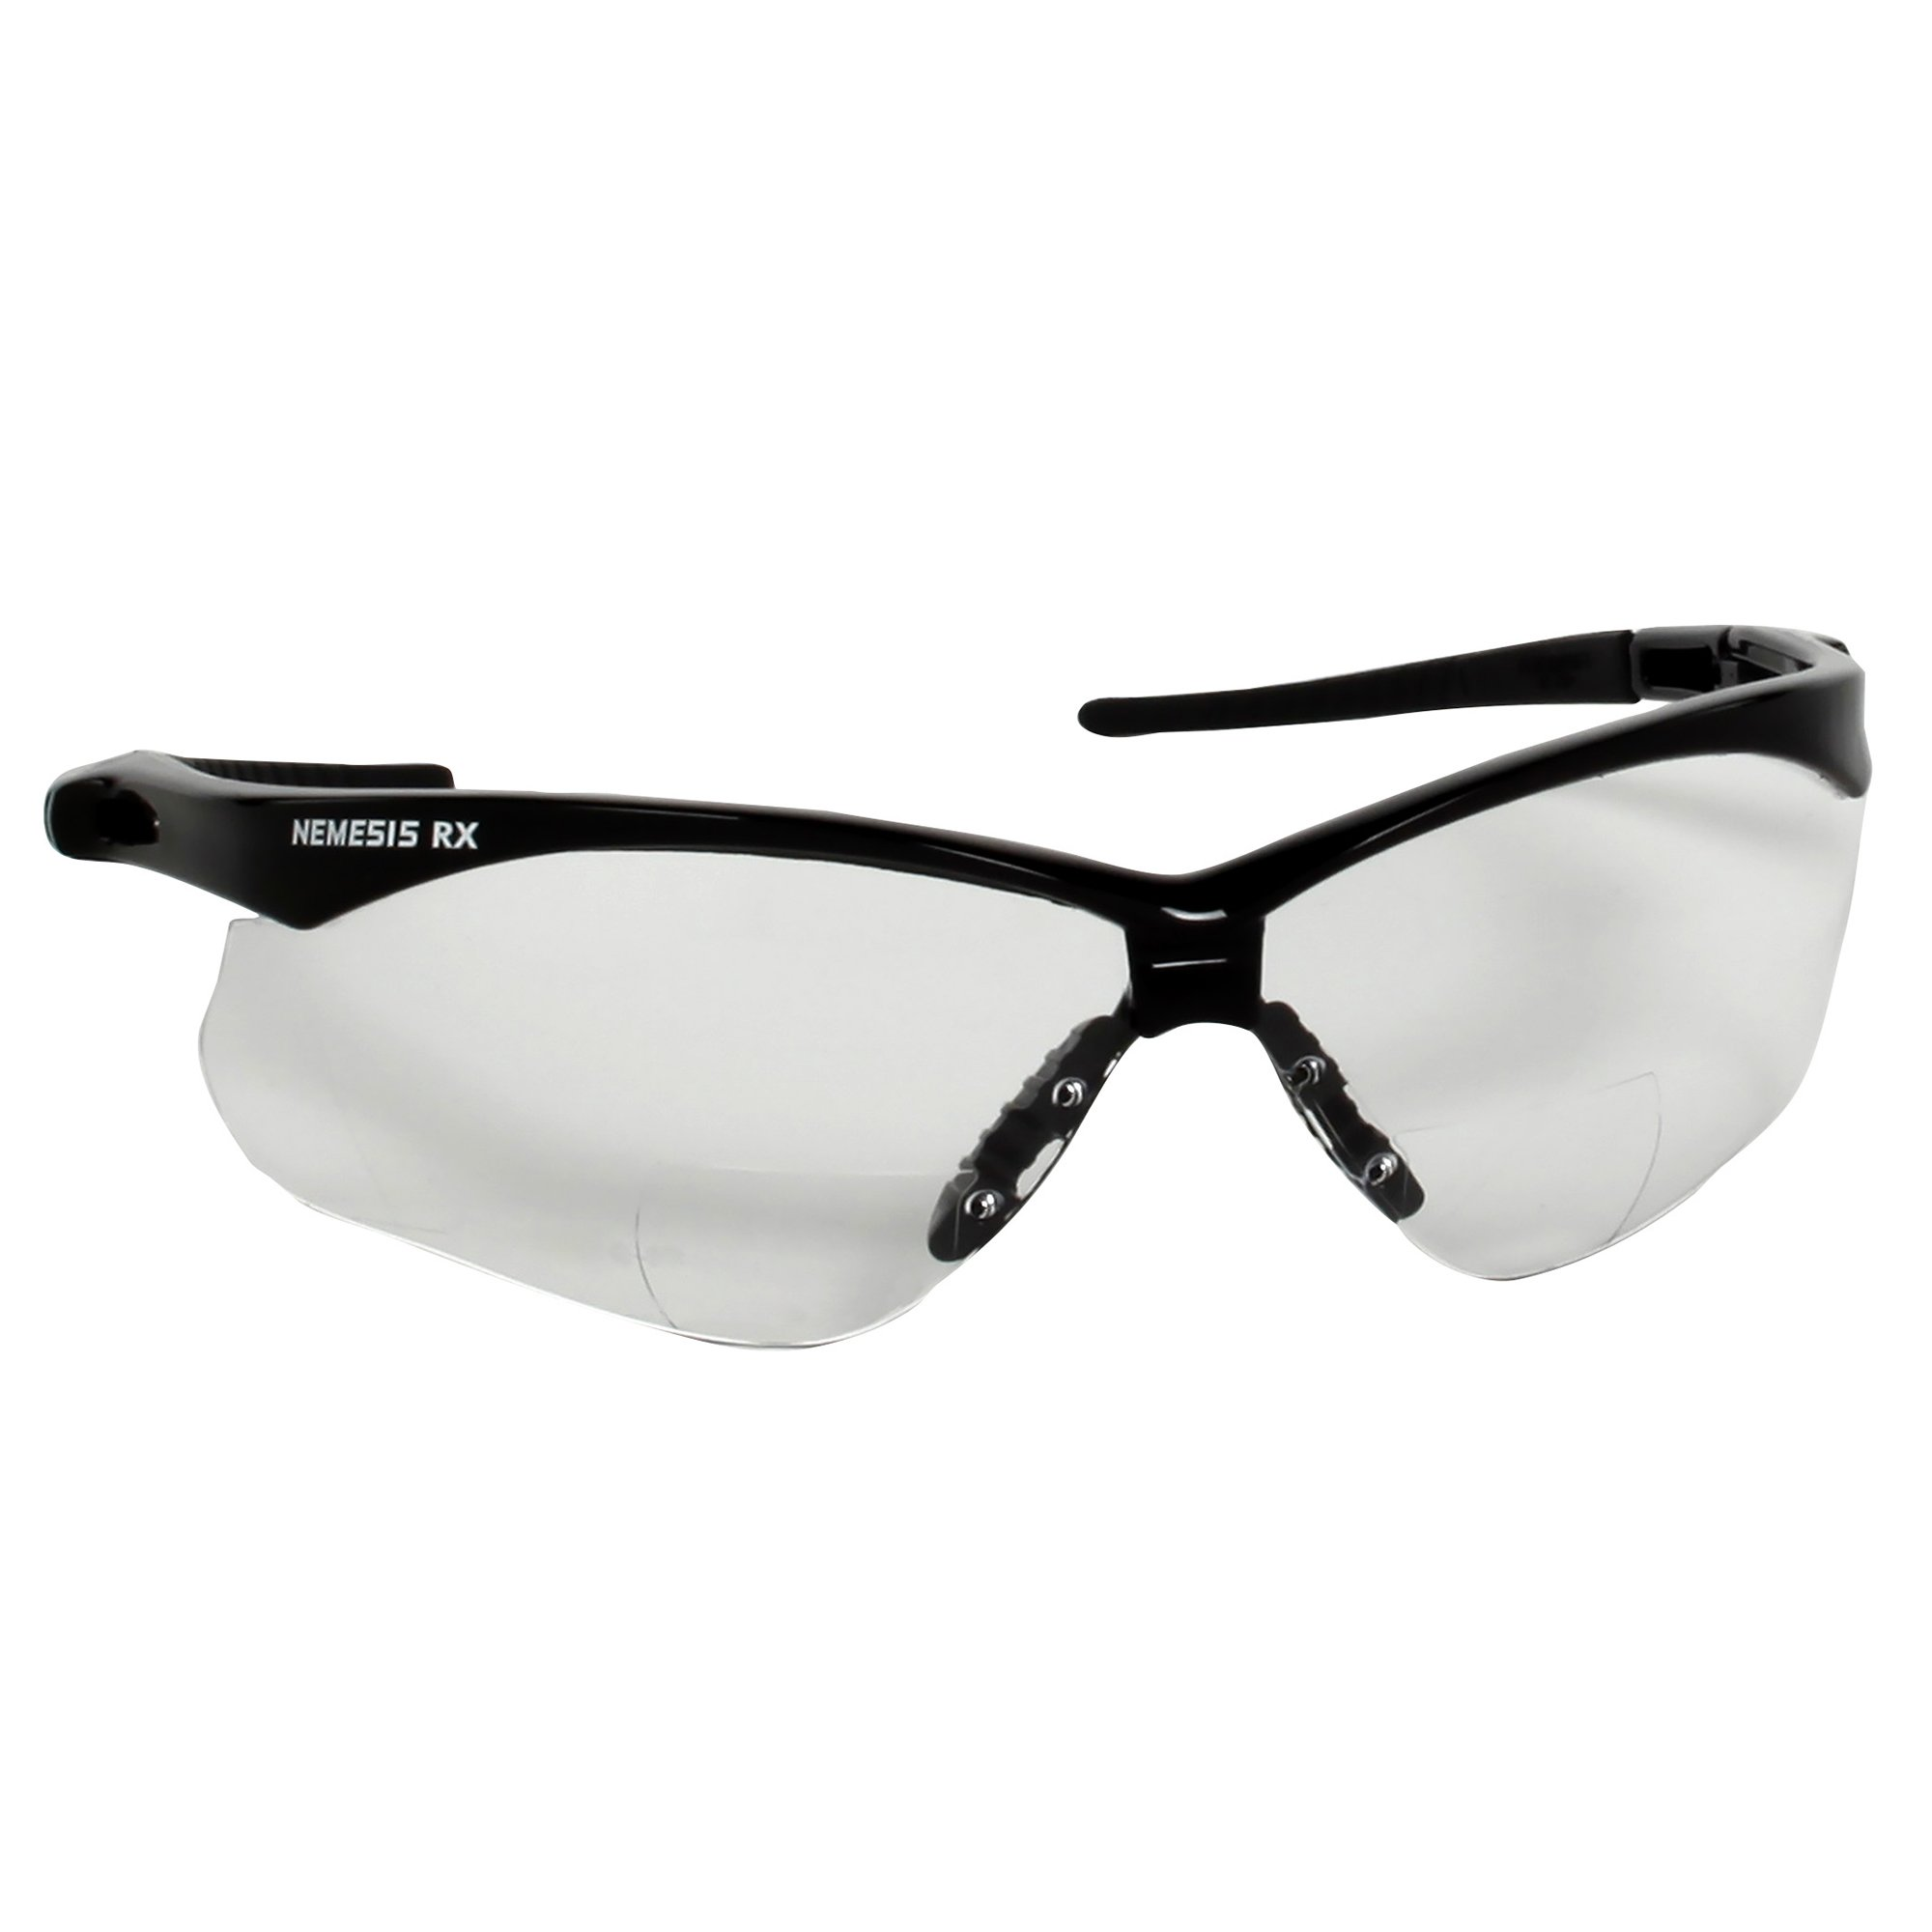 Jackson Safety V60 Nemesis Vision Correction Safety Glasses (28627), Clear Readers with +2.5 Diopters, Black Frame, 6 Pairs/Case